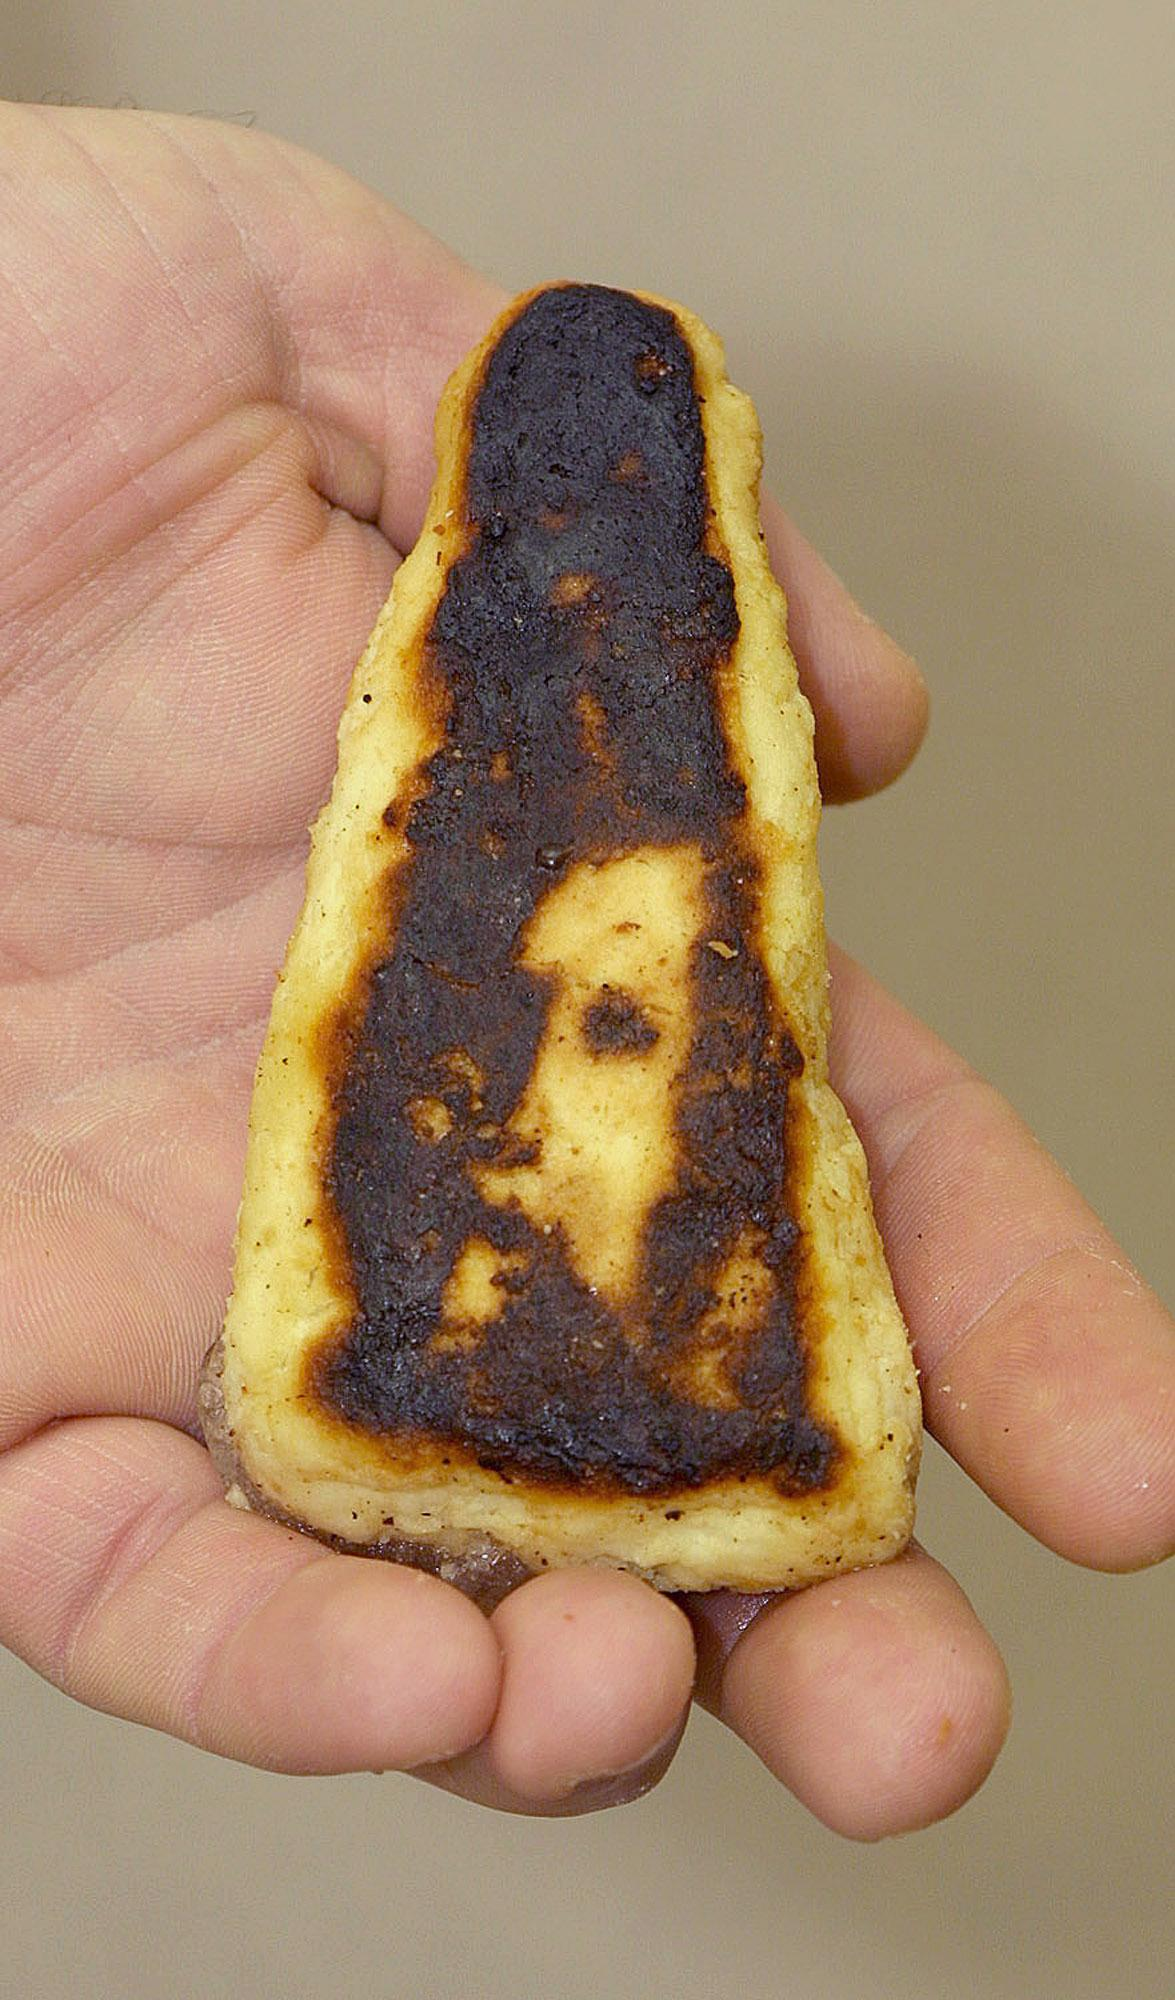 Fred Whan, of Kingston, Ont., shows off a fish stick he cooked that he claims shows the likeness of Jesus Christ.